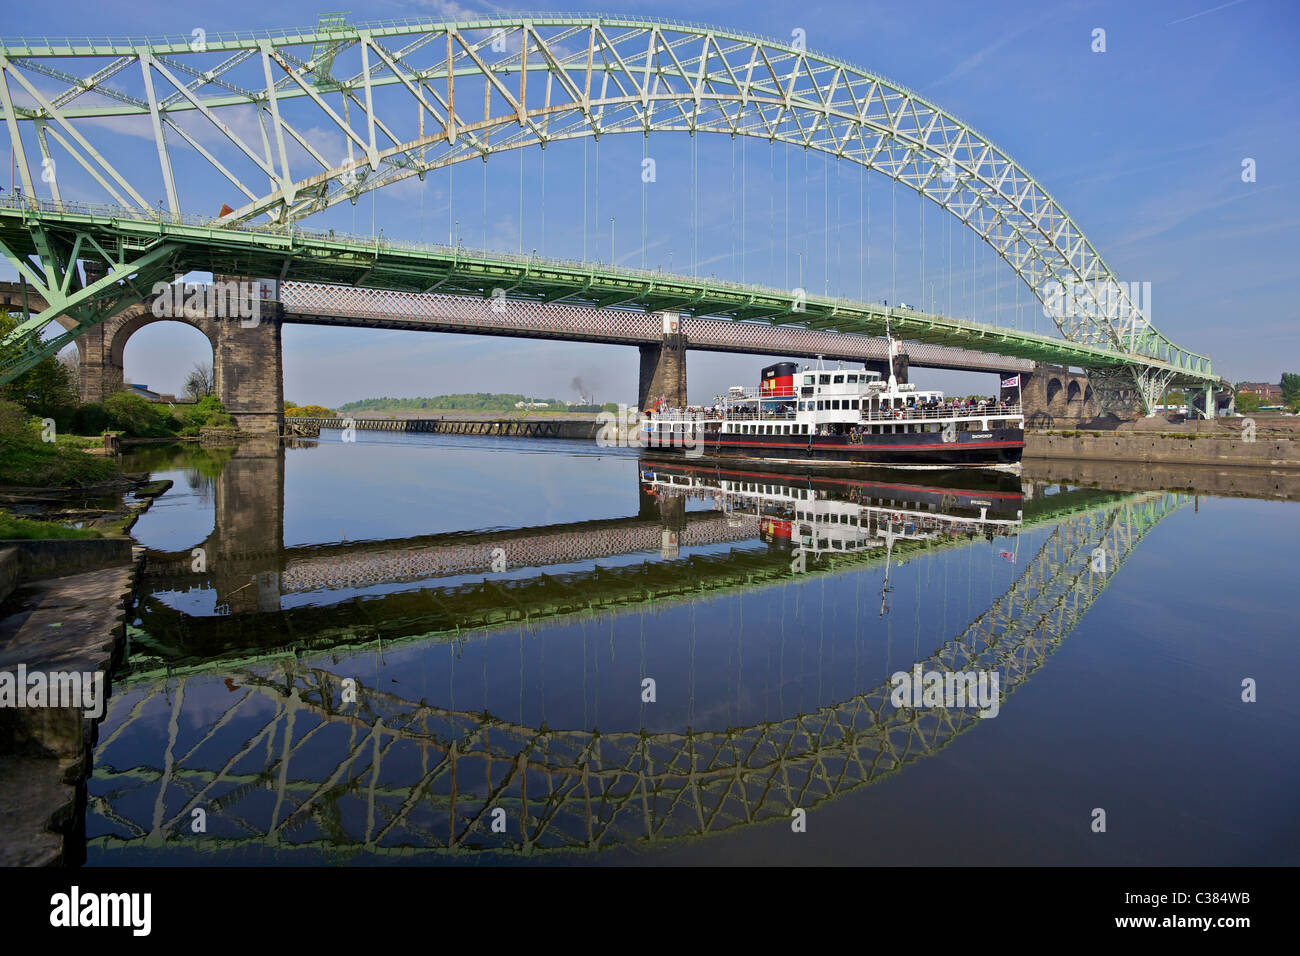 The Queensway bridge between Runcorn and Widnes on the Manchester Ship Canal. - Stock Image